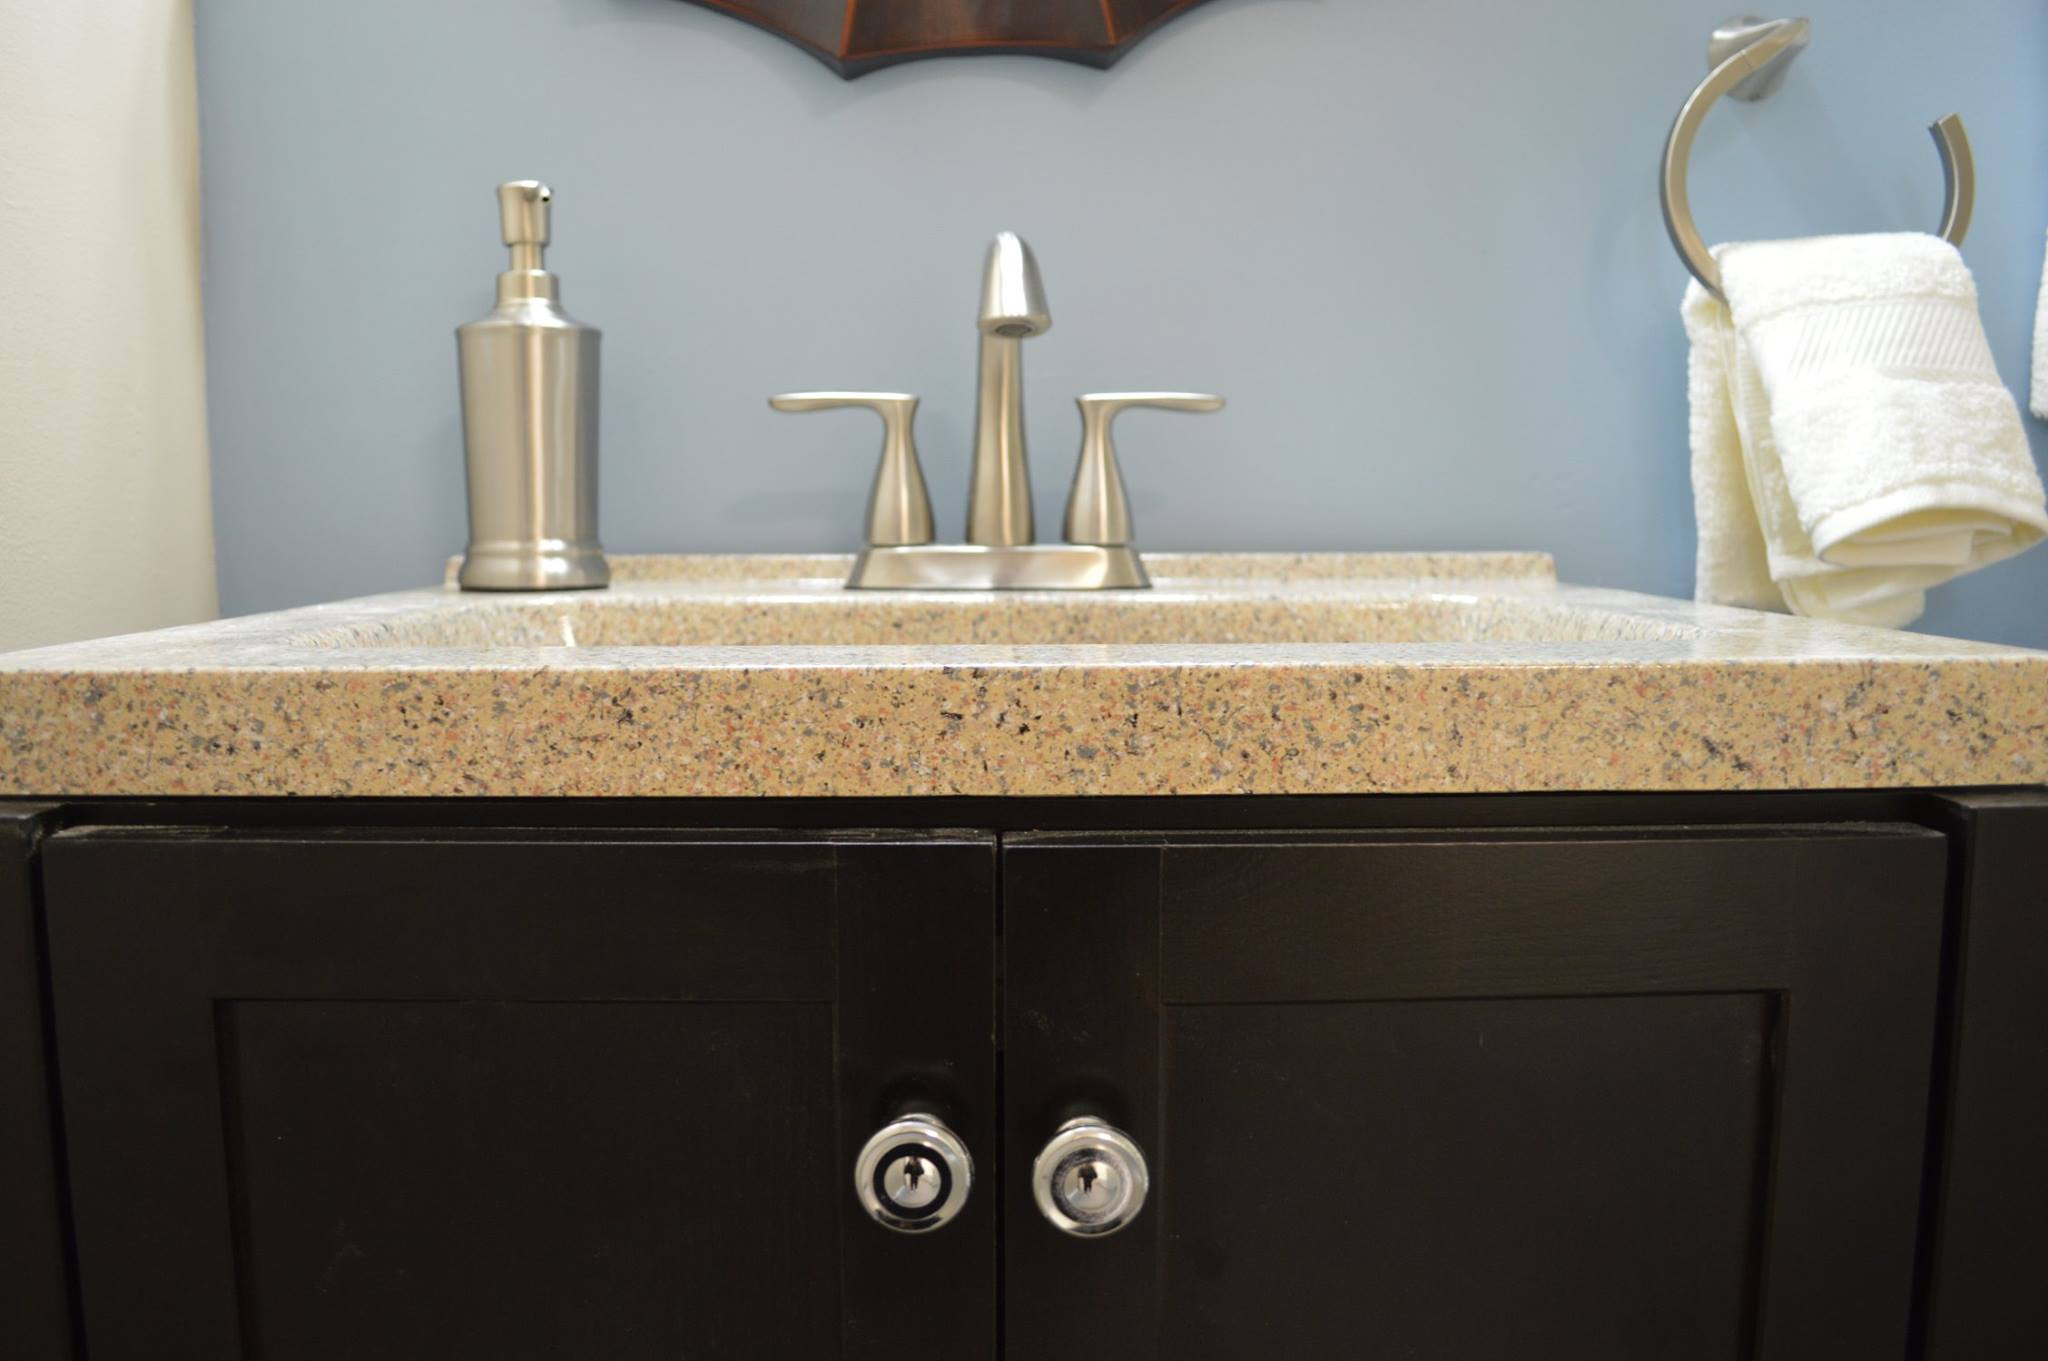 how to refinish kitchen sink luxury faucets bathtub refinishing and resurfacing professionals free quote